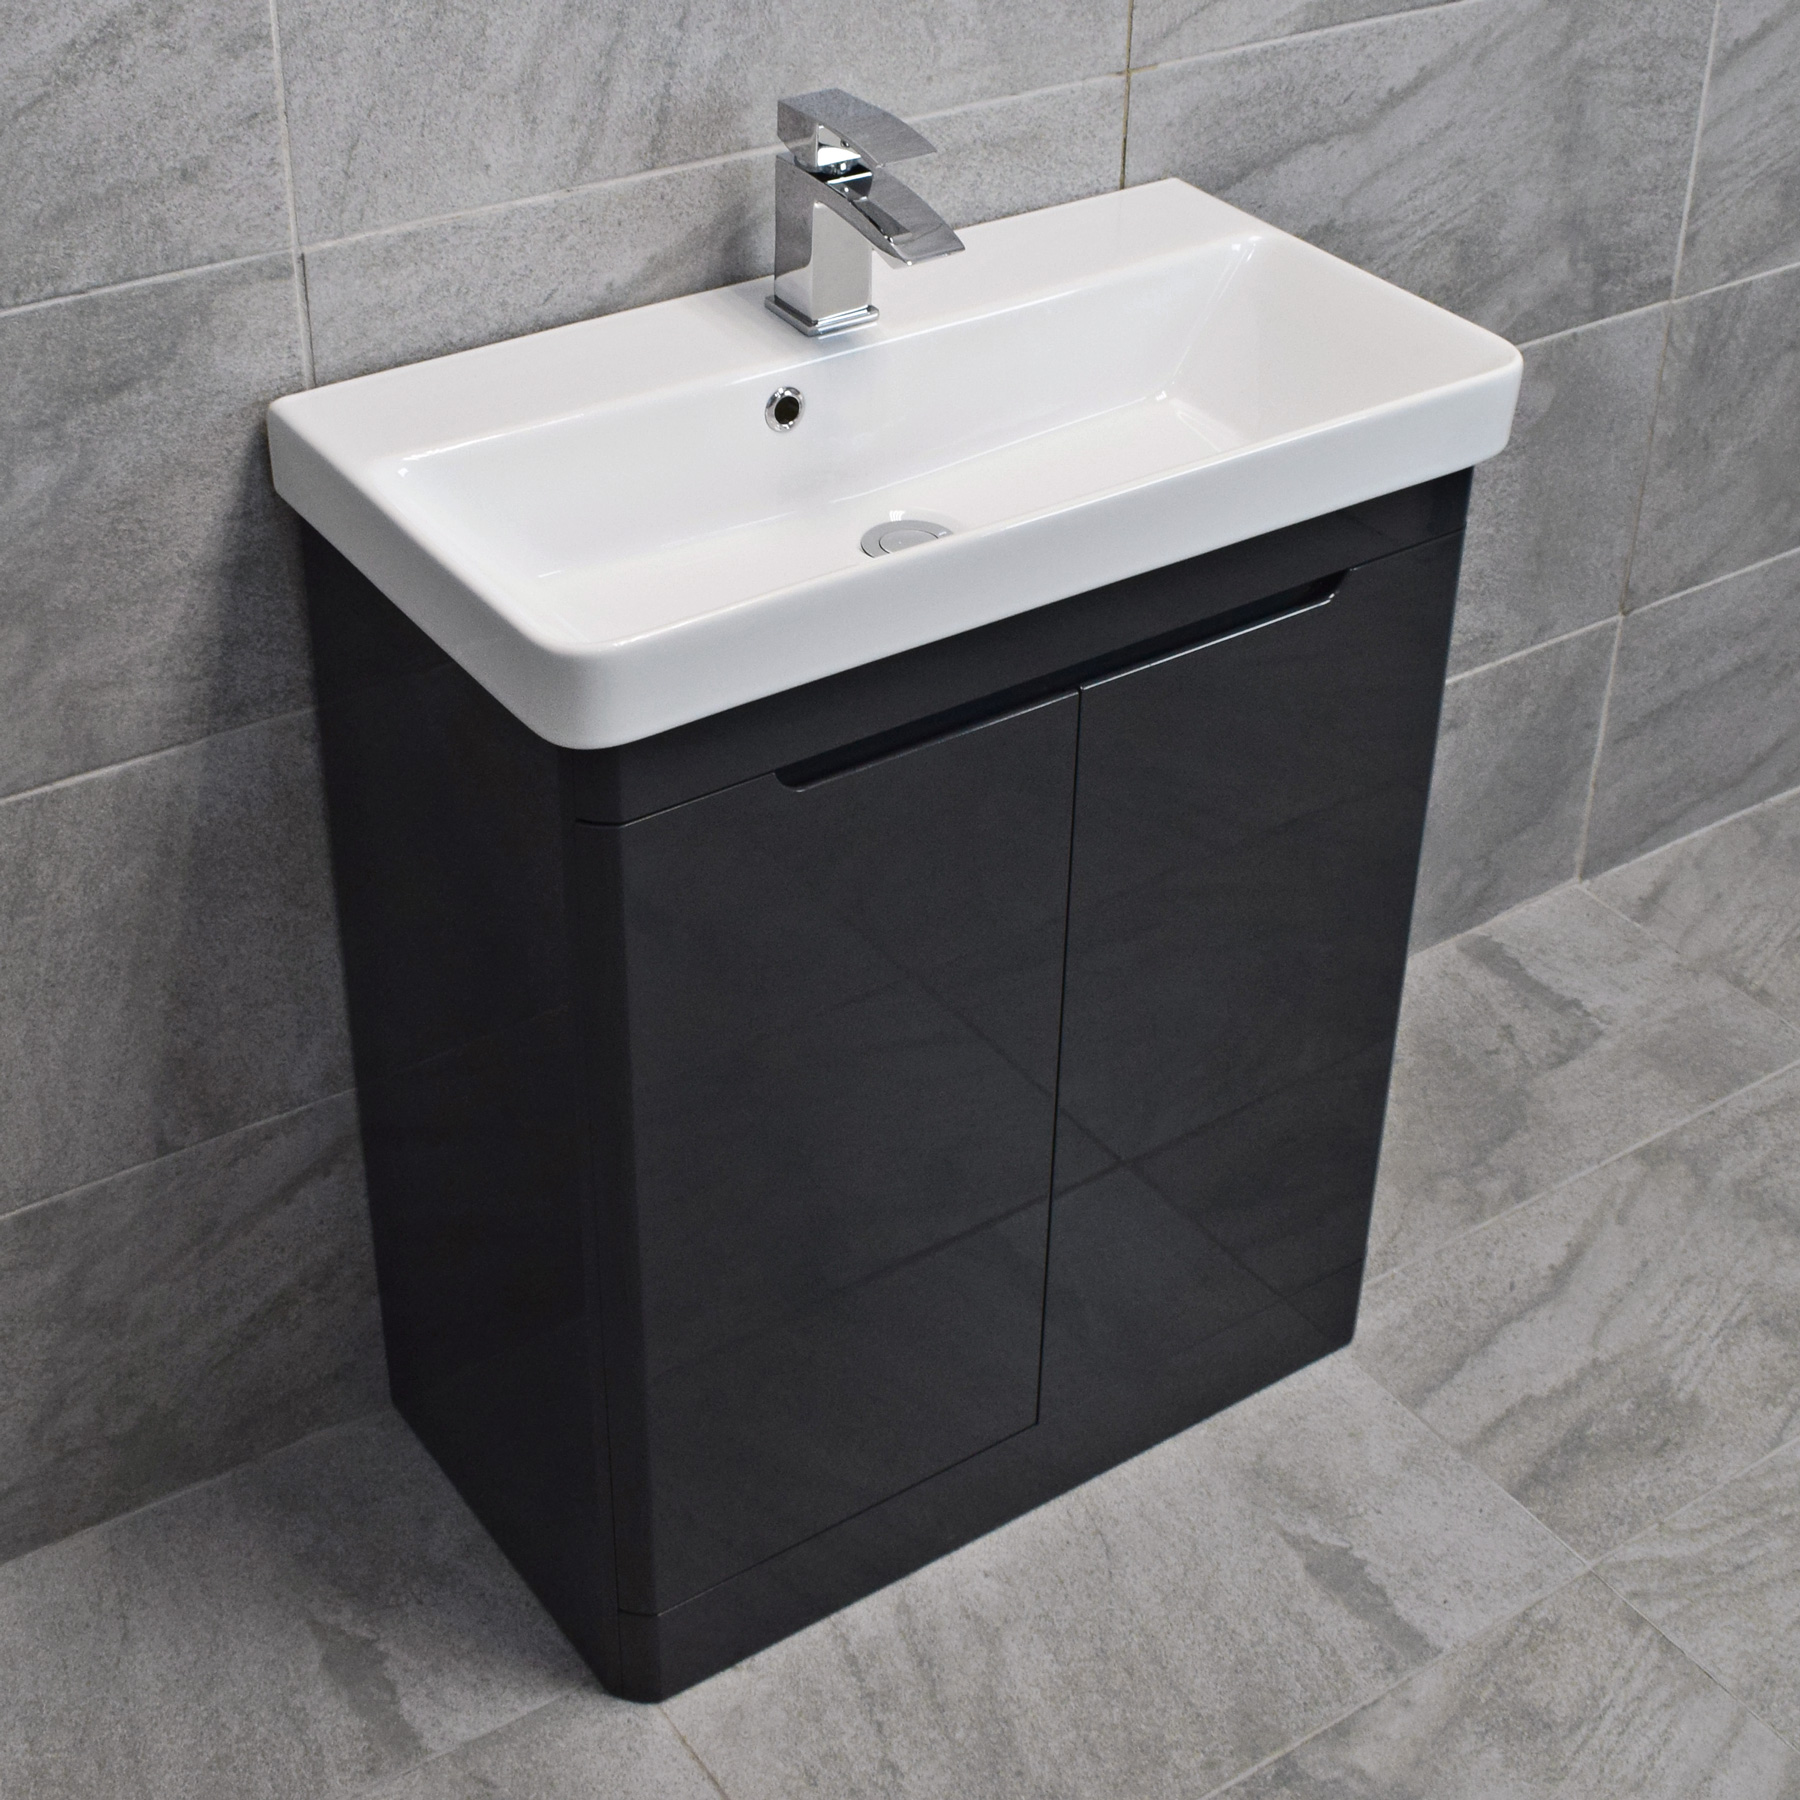 Ross Anthracite Curved Vanity Basin Sink Unit 550mm Or